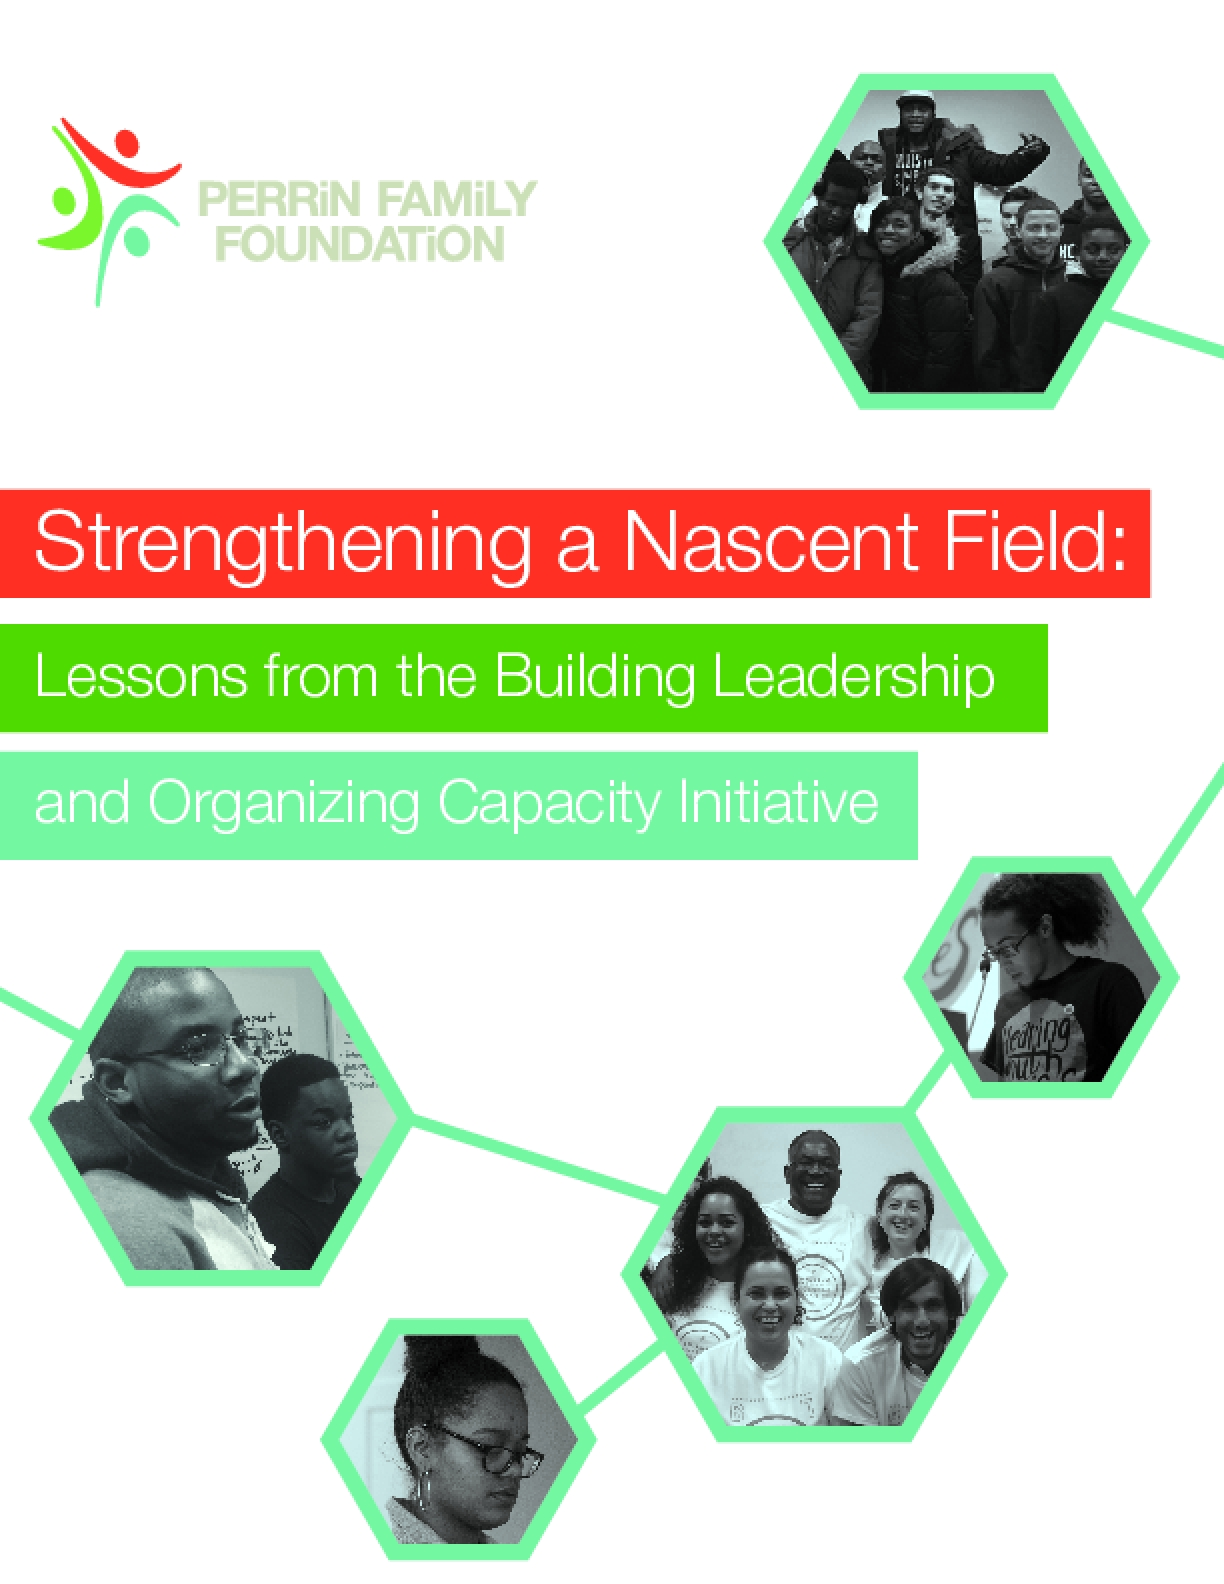 Strengthening a Nascent Field: Lessons from the Building Leadership and Organizing Capacity Initiative